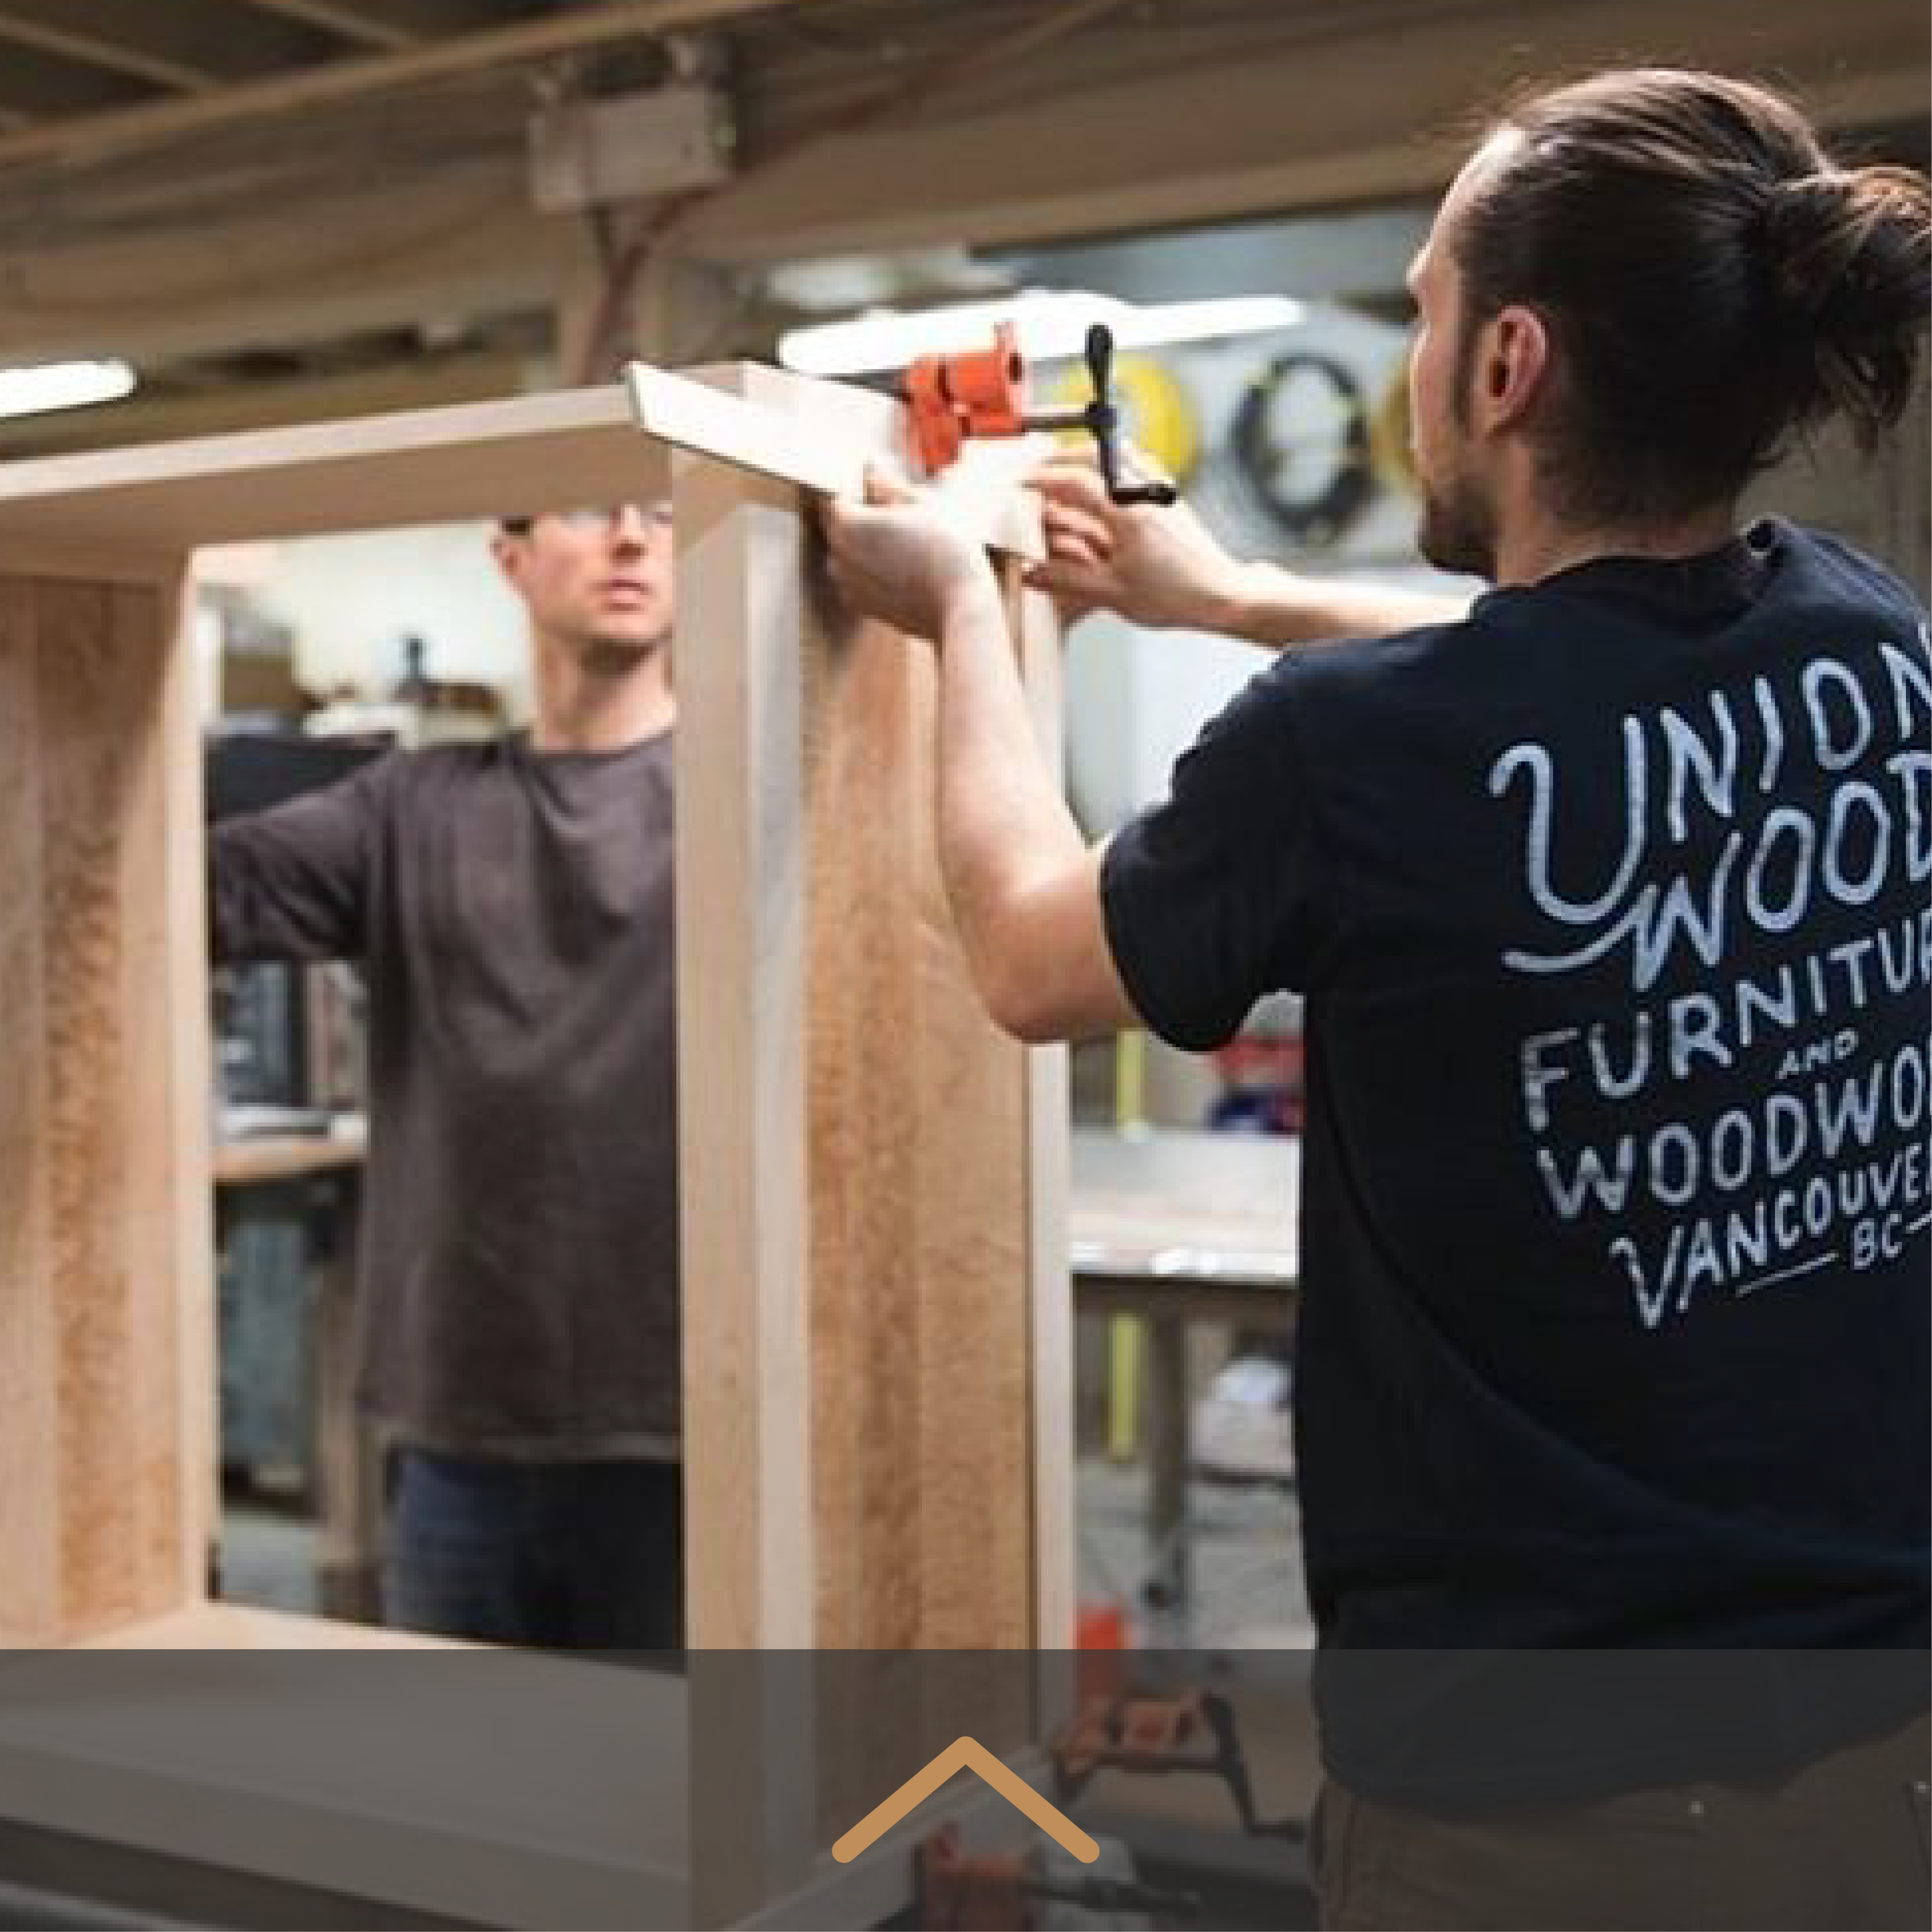 Union Wood Co Follow Union Wood Co On Instagram See Our Latest Handmade Wood Furniture Design Inspiration A Instagram Handmade Wood Furniture Woodworking